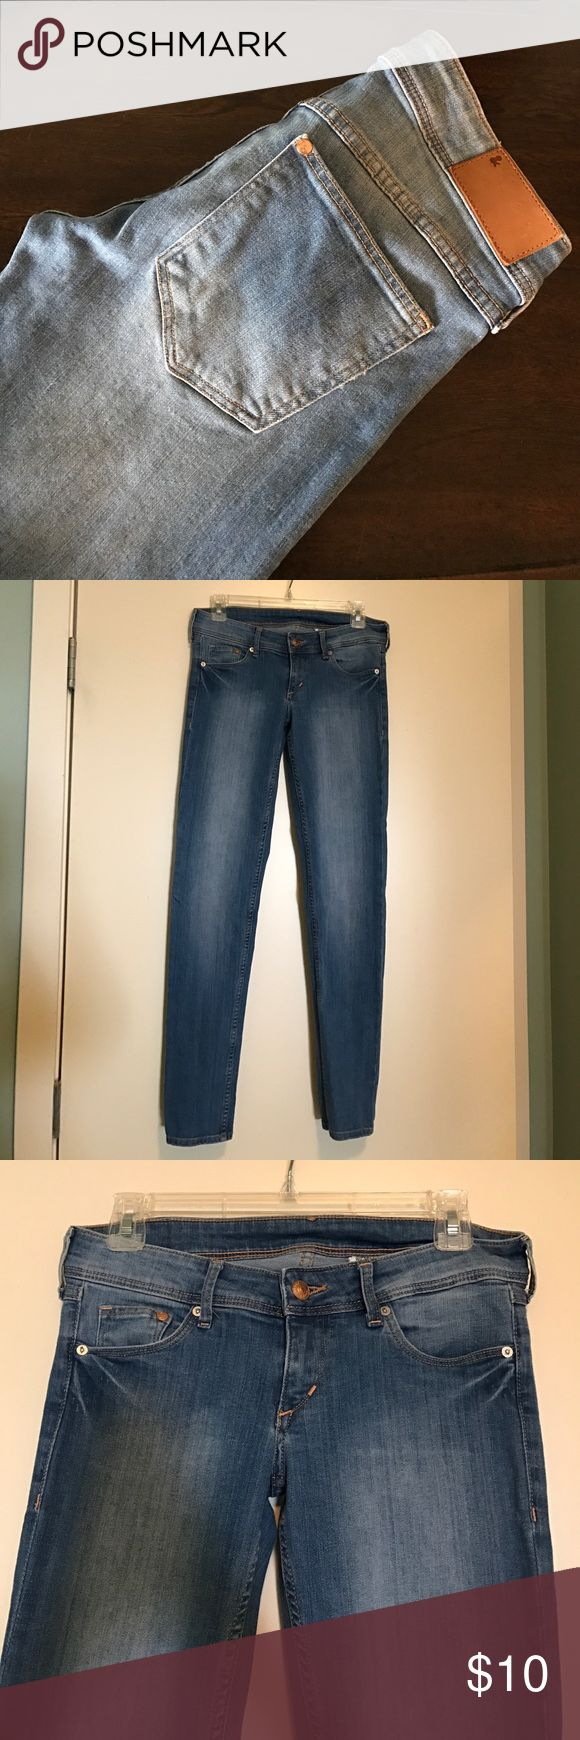 "H&M Super Low Super Skinny Light Wash Jeans 28/30 Women's H&M Super Low Super Skinny Light Wash Jeans Size 28/30. In great condition. Inseam measures approximately 30"". H&M Jeans Skinny"